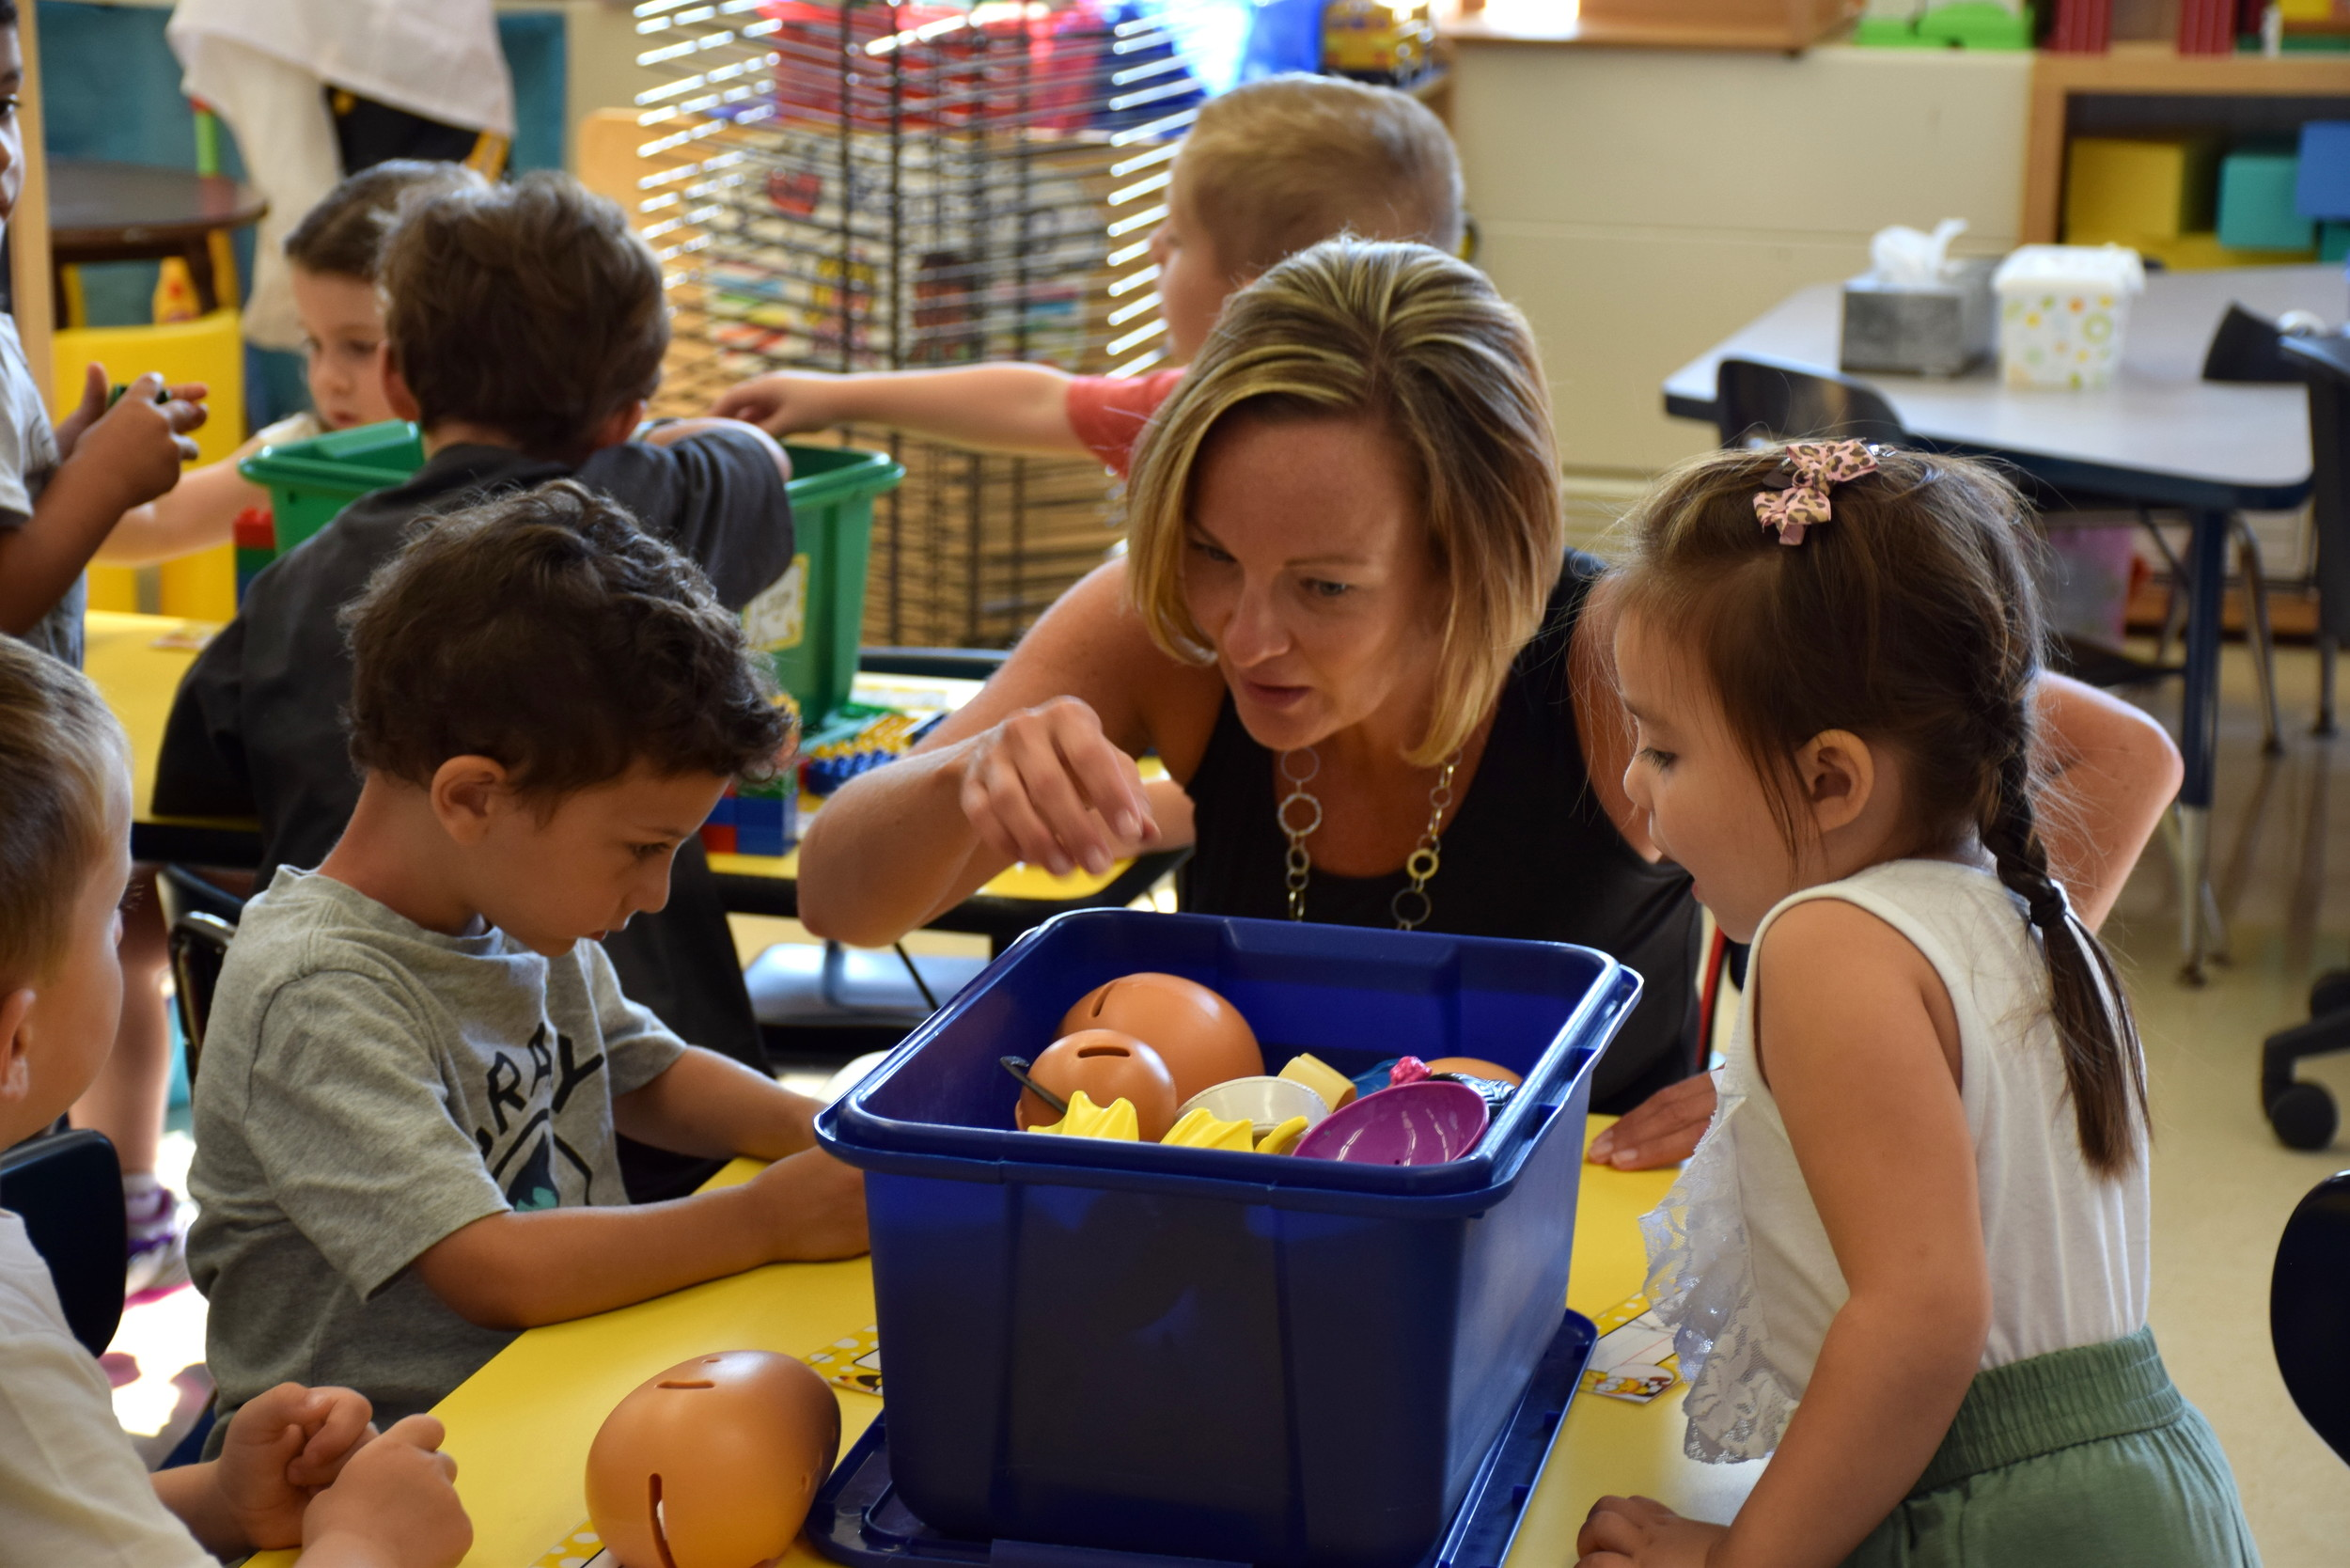 Pre-K teacher Mrs. Haines spent time meeting her new students in the classroom on the first day of school.